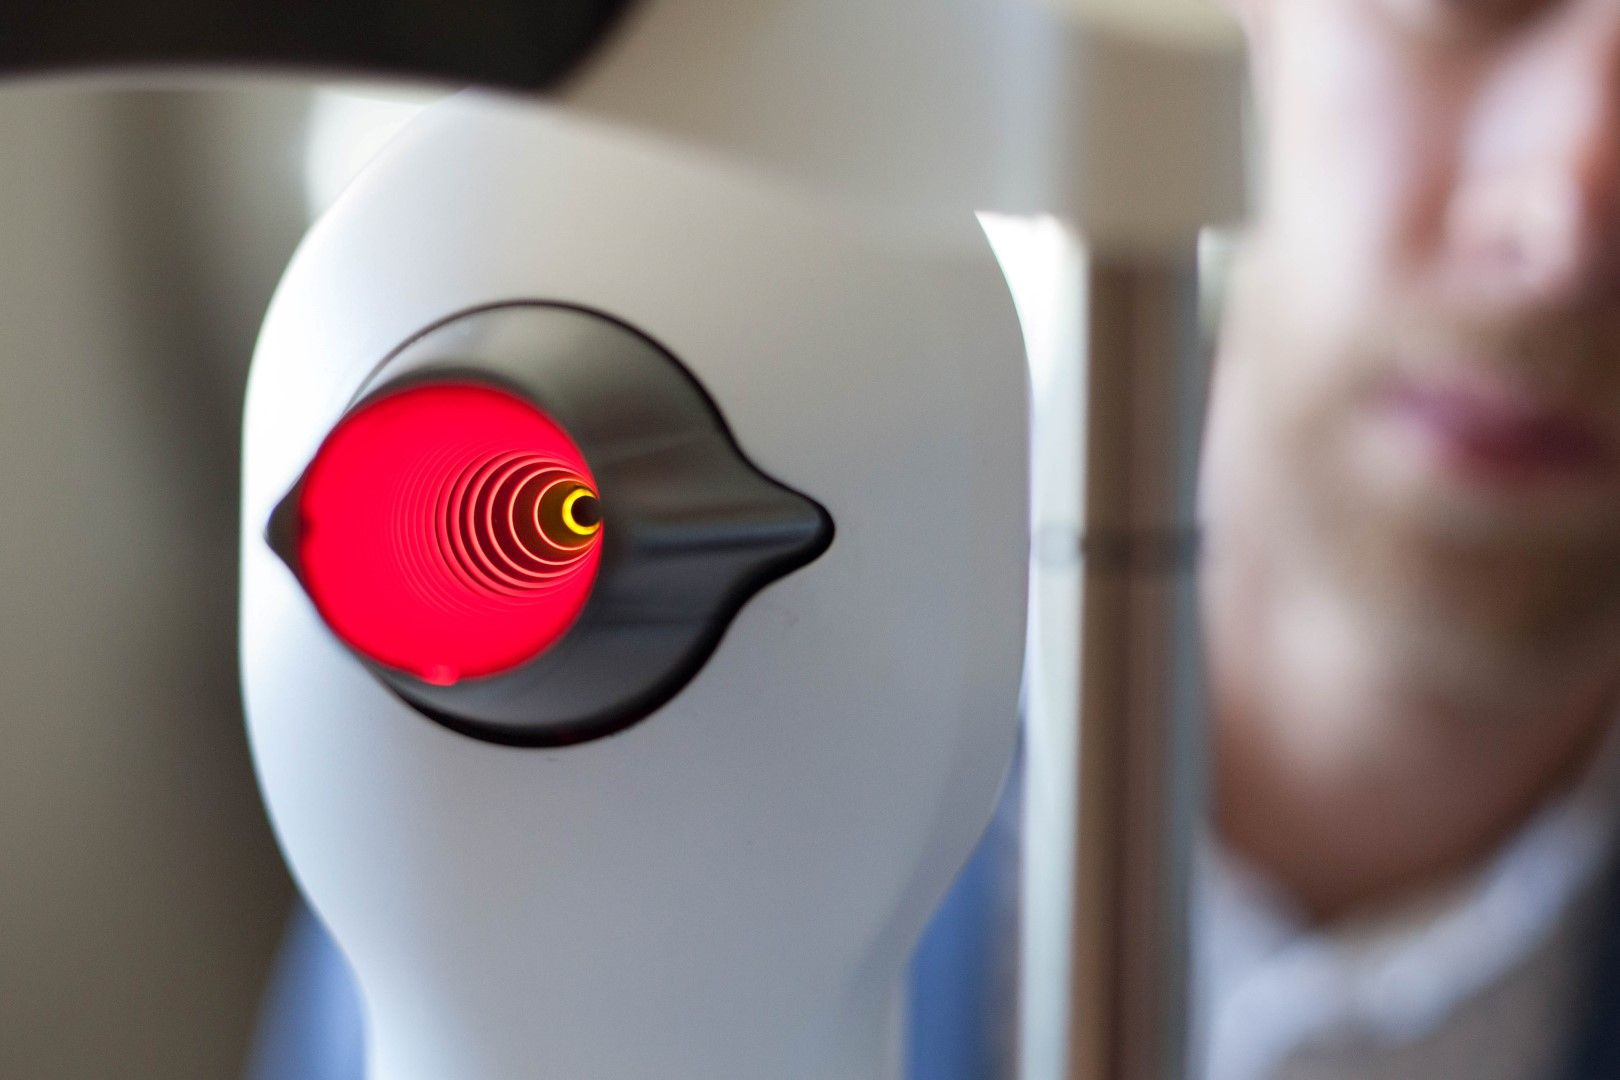 Our corneal topographer device: used to accurately measure the shape of your eye for contact lens fitting.